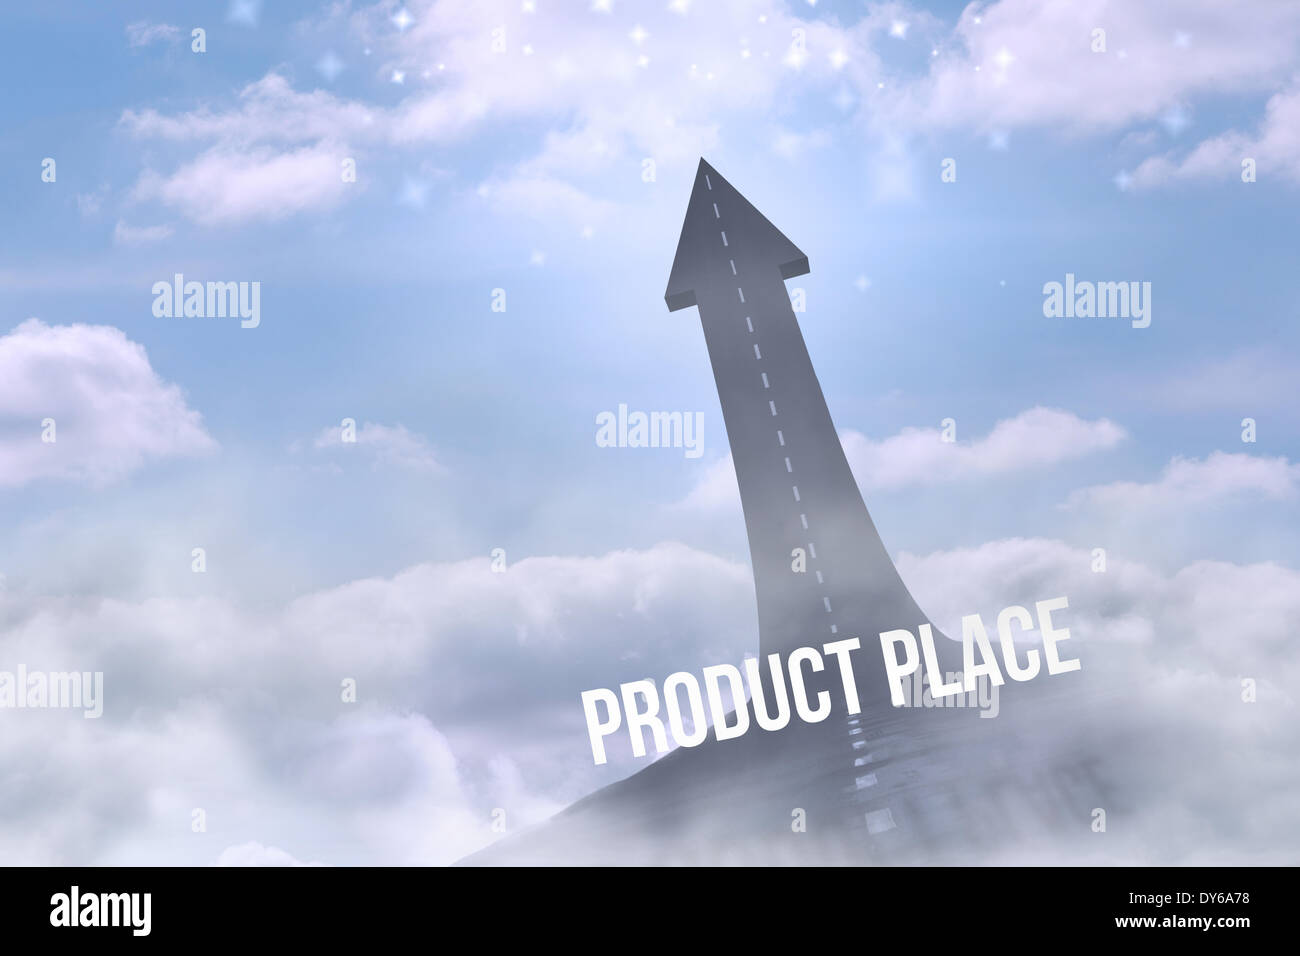 Product place against road turning into arrow - Stock Image